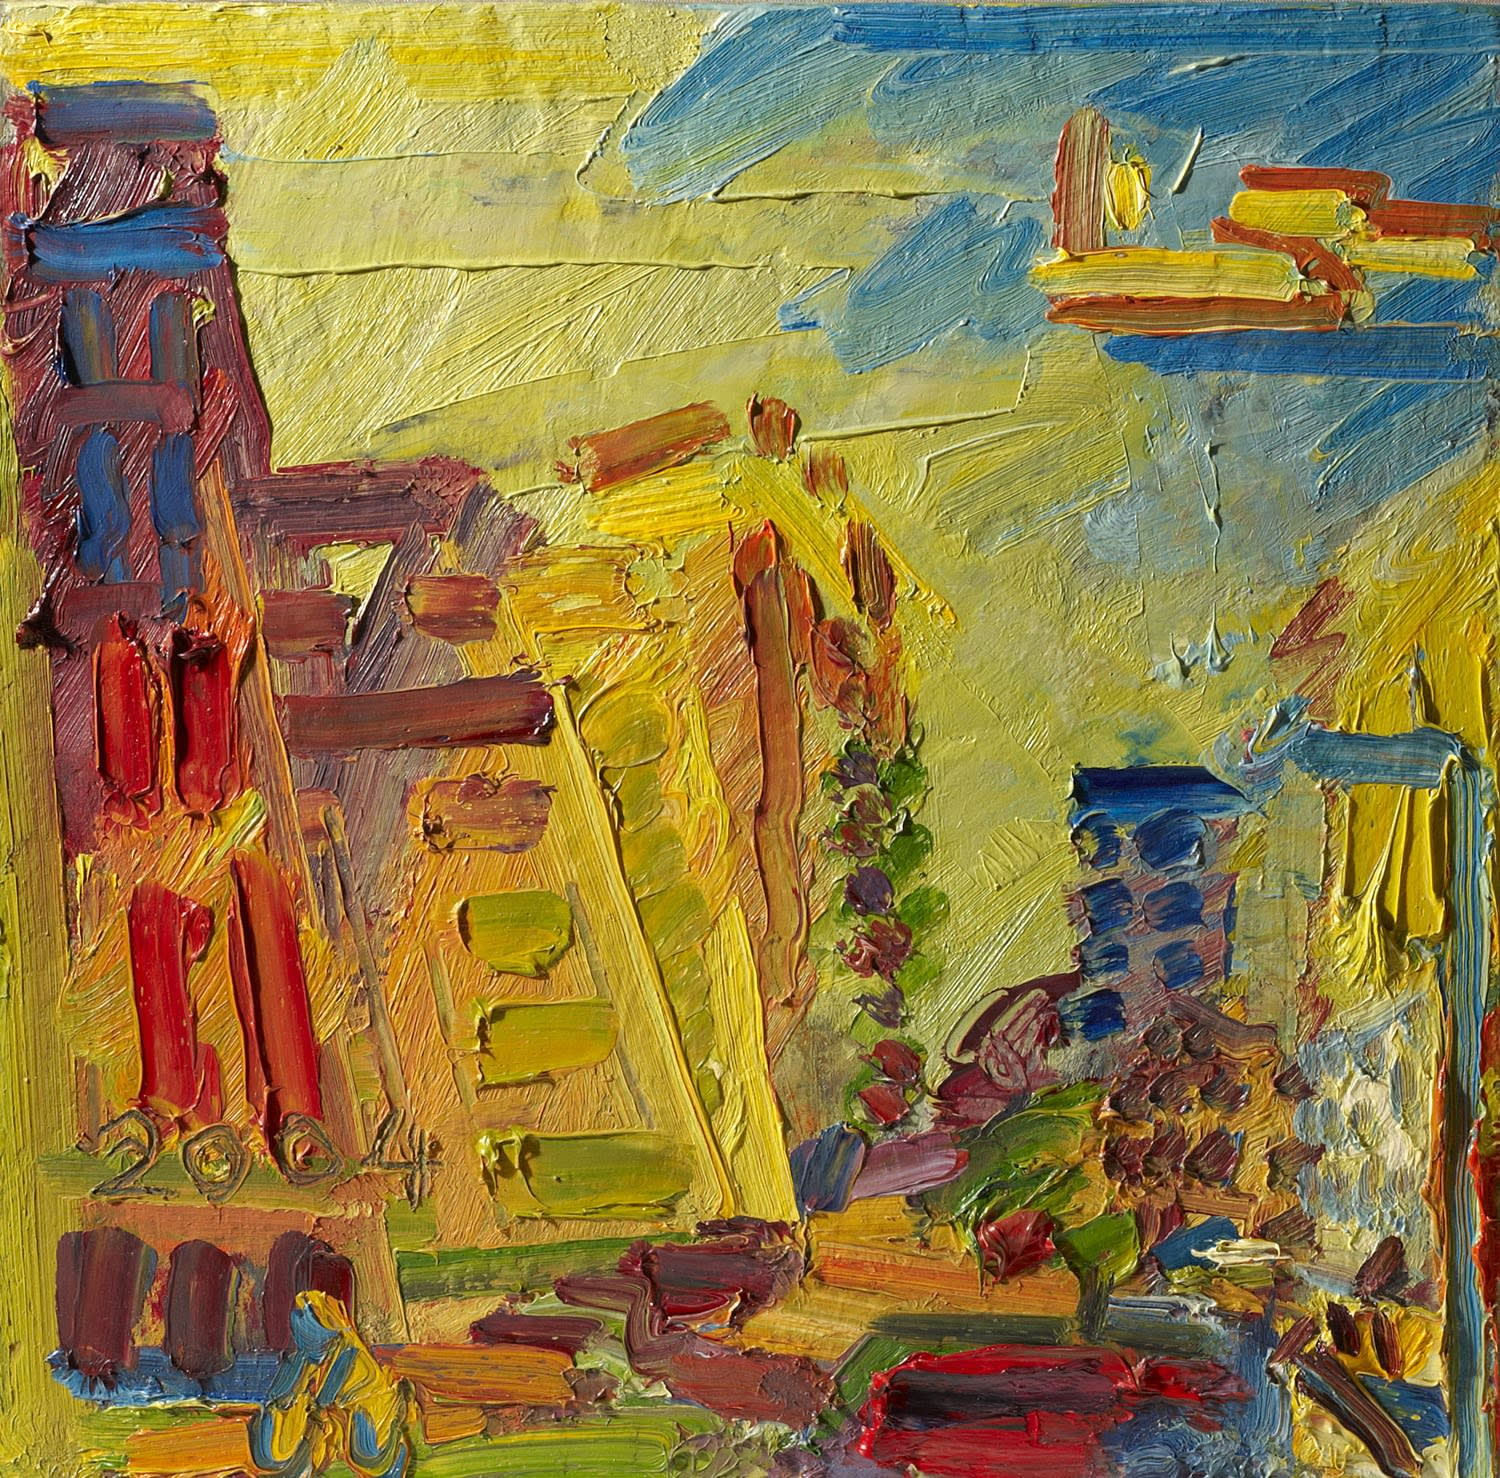 The Frank Auerbach and Mornington Crescent, Summer Morning II Part of the audio guide produced for Ben Uri gallery 2015 Centenary. Listen